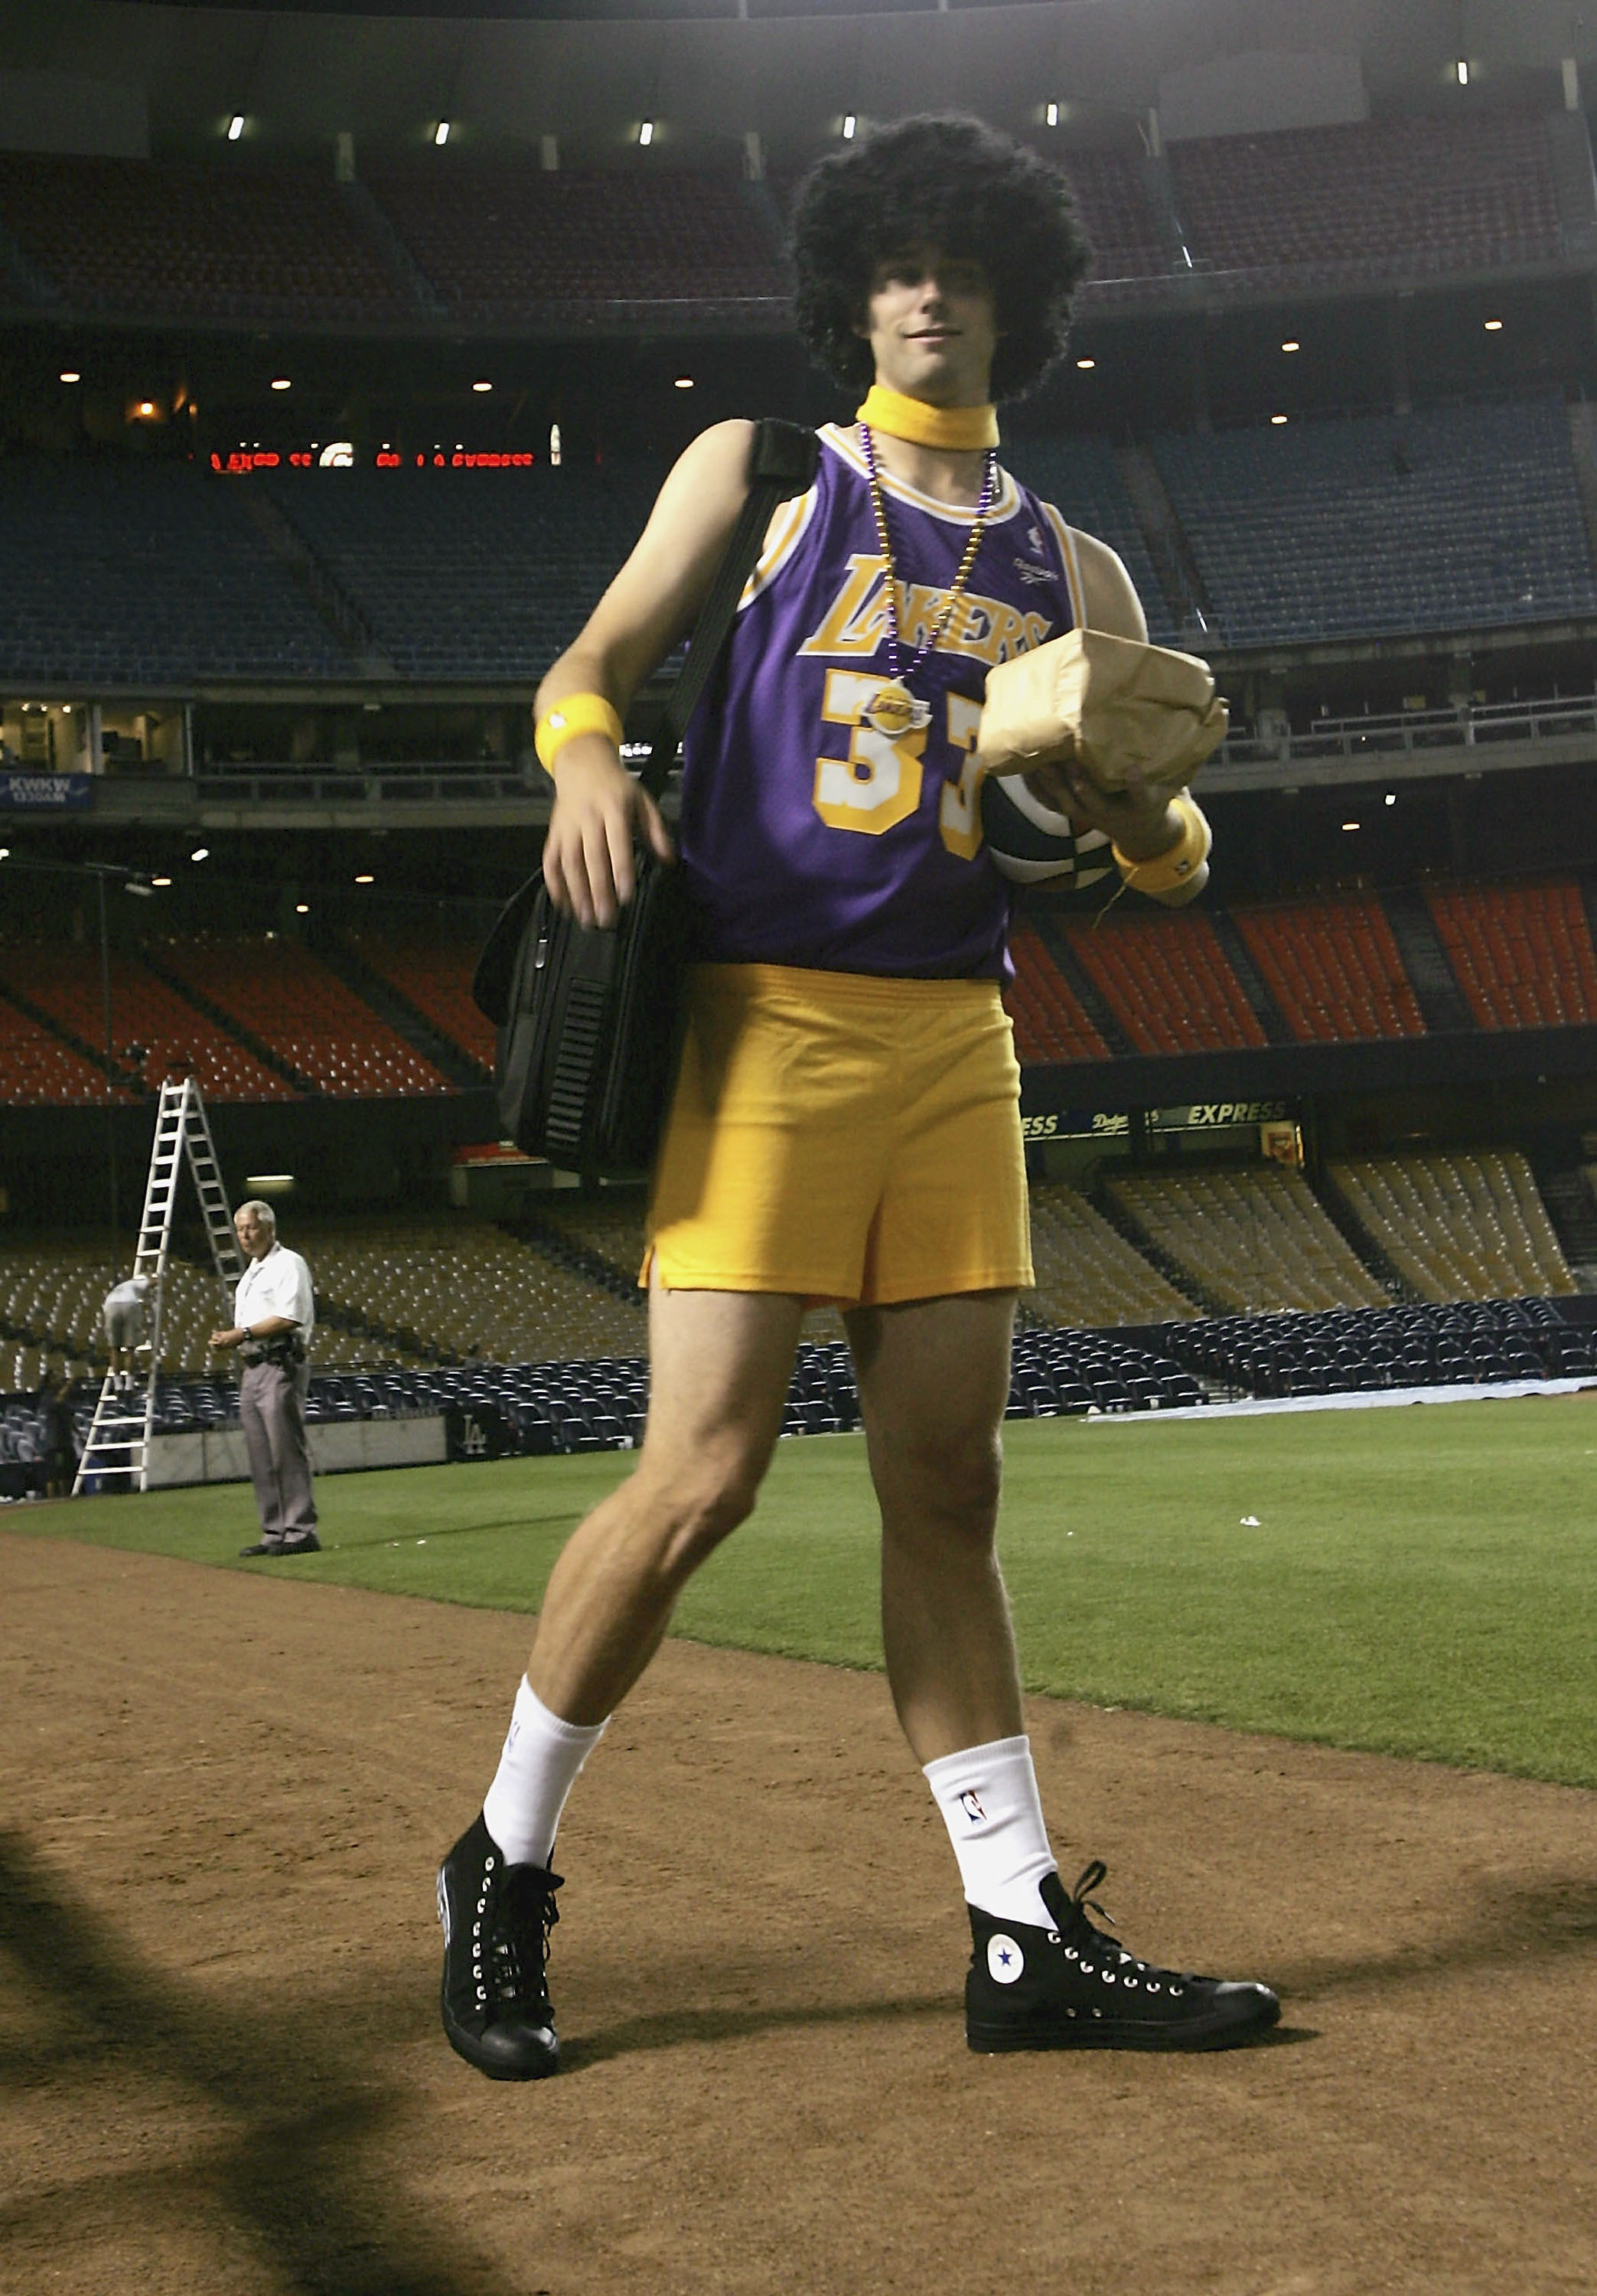 LOS ANGELES - SEPTEMBER 29:   Starting pitcher Dustin Nippert #57 of the Arizona Diamondbacks wears Laker clothes in traditional rookie hazing as he leaves the stadium after the game with the Los Angeles Dodgers on September 29, 2005 at Dodger Stadium in